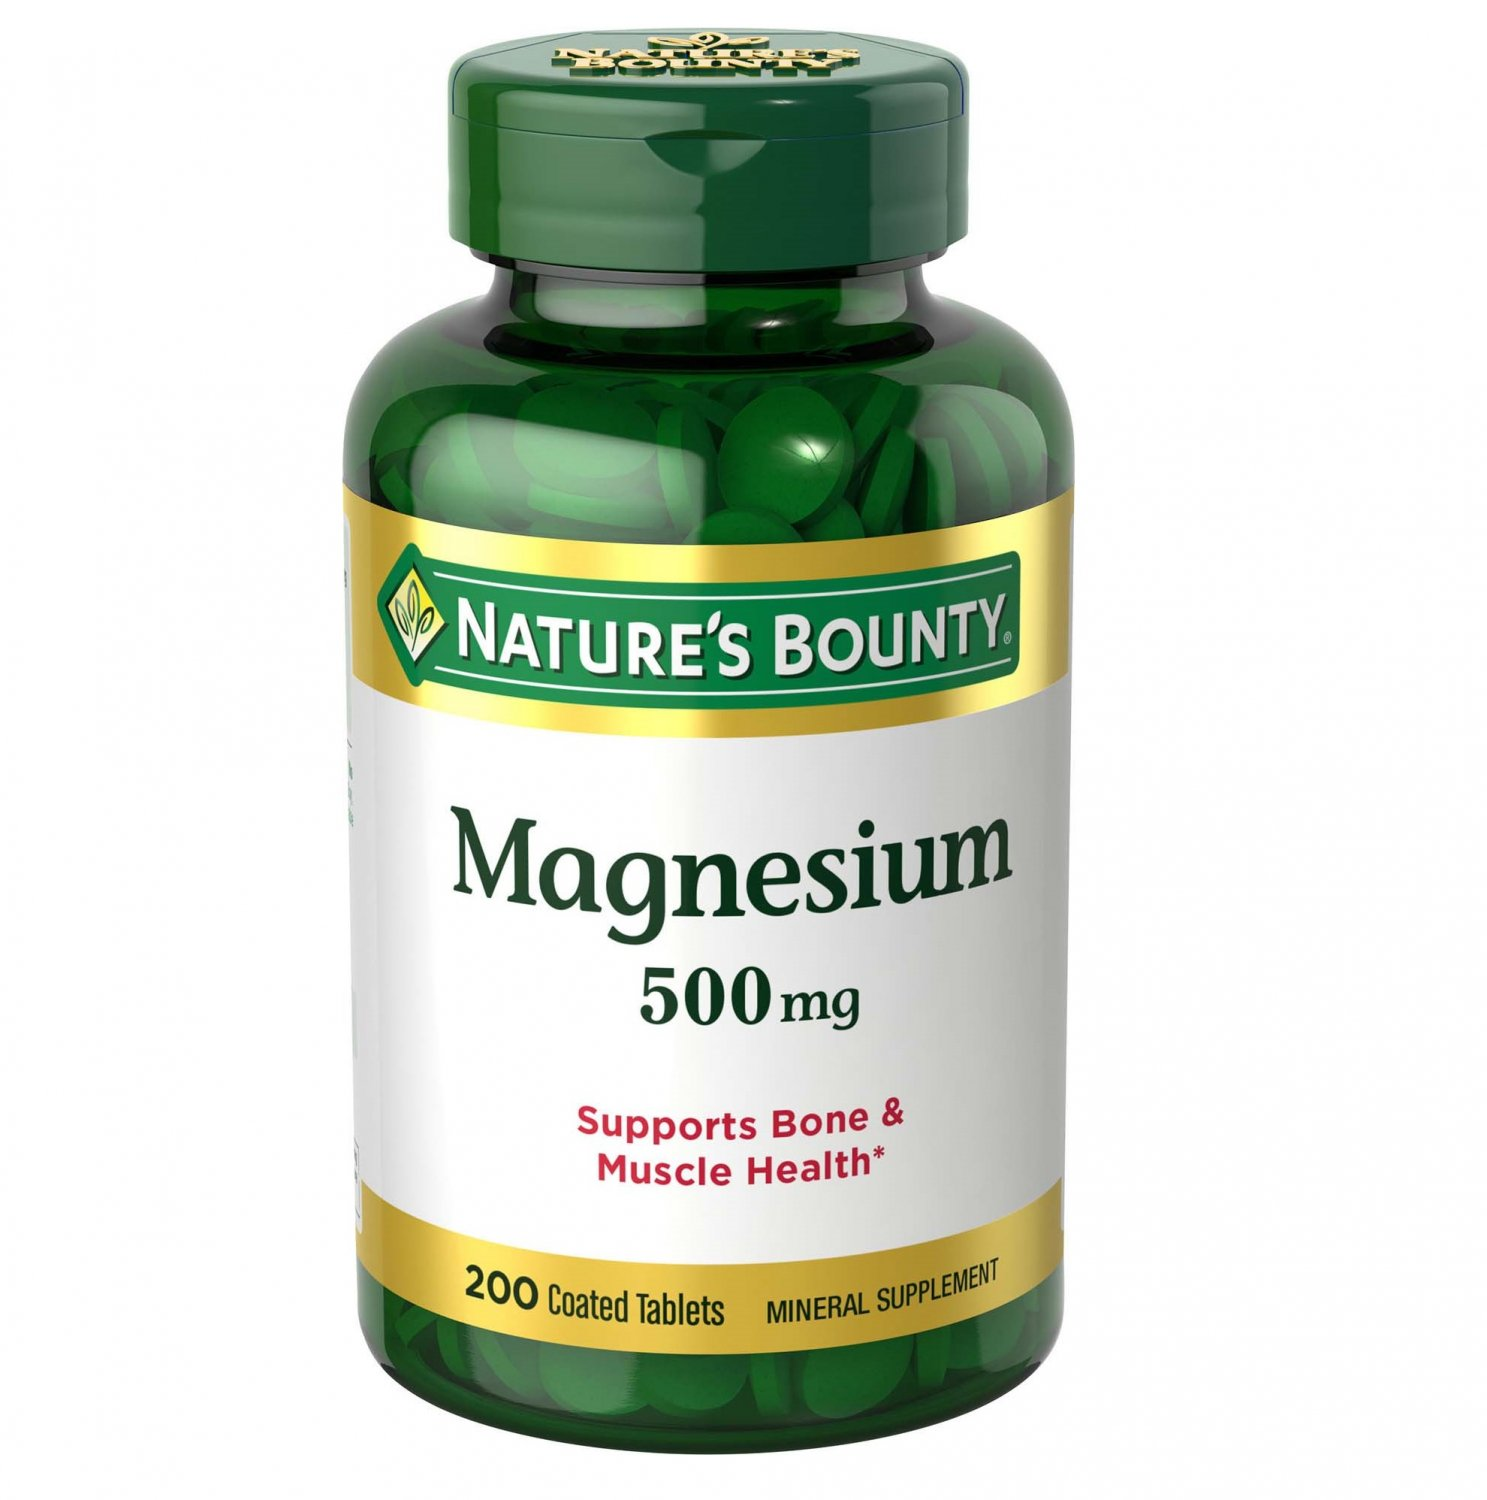 Nature's Bounty Magnesium Coated Tablets, 500 Mg, 200 Count